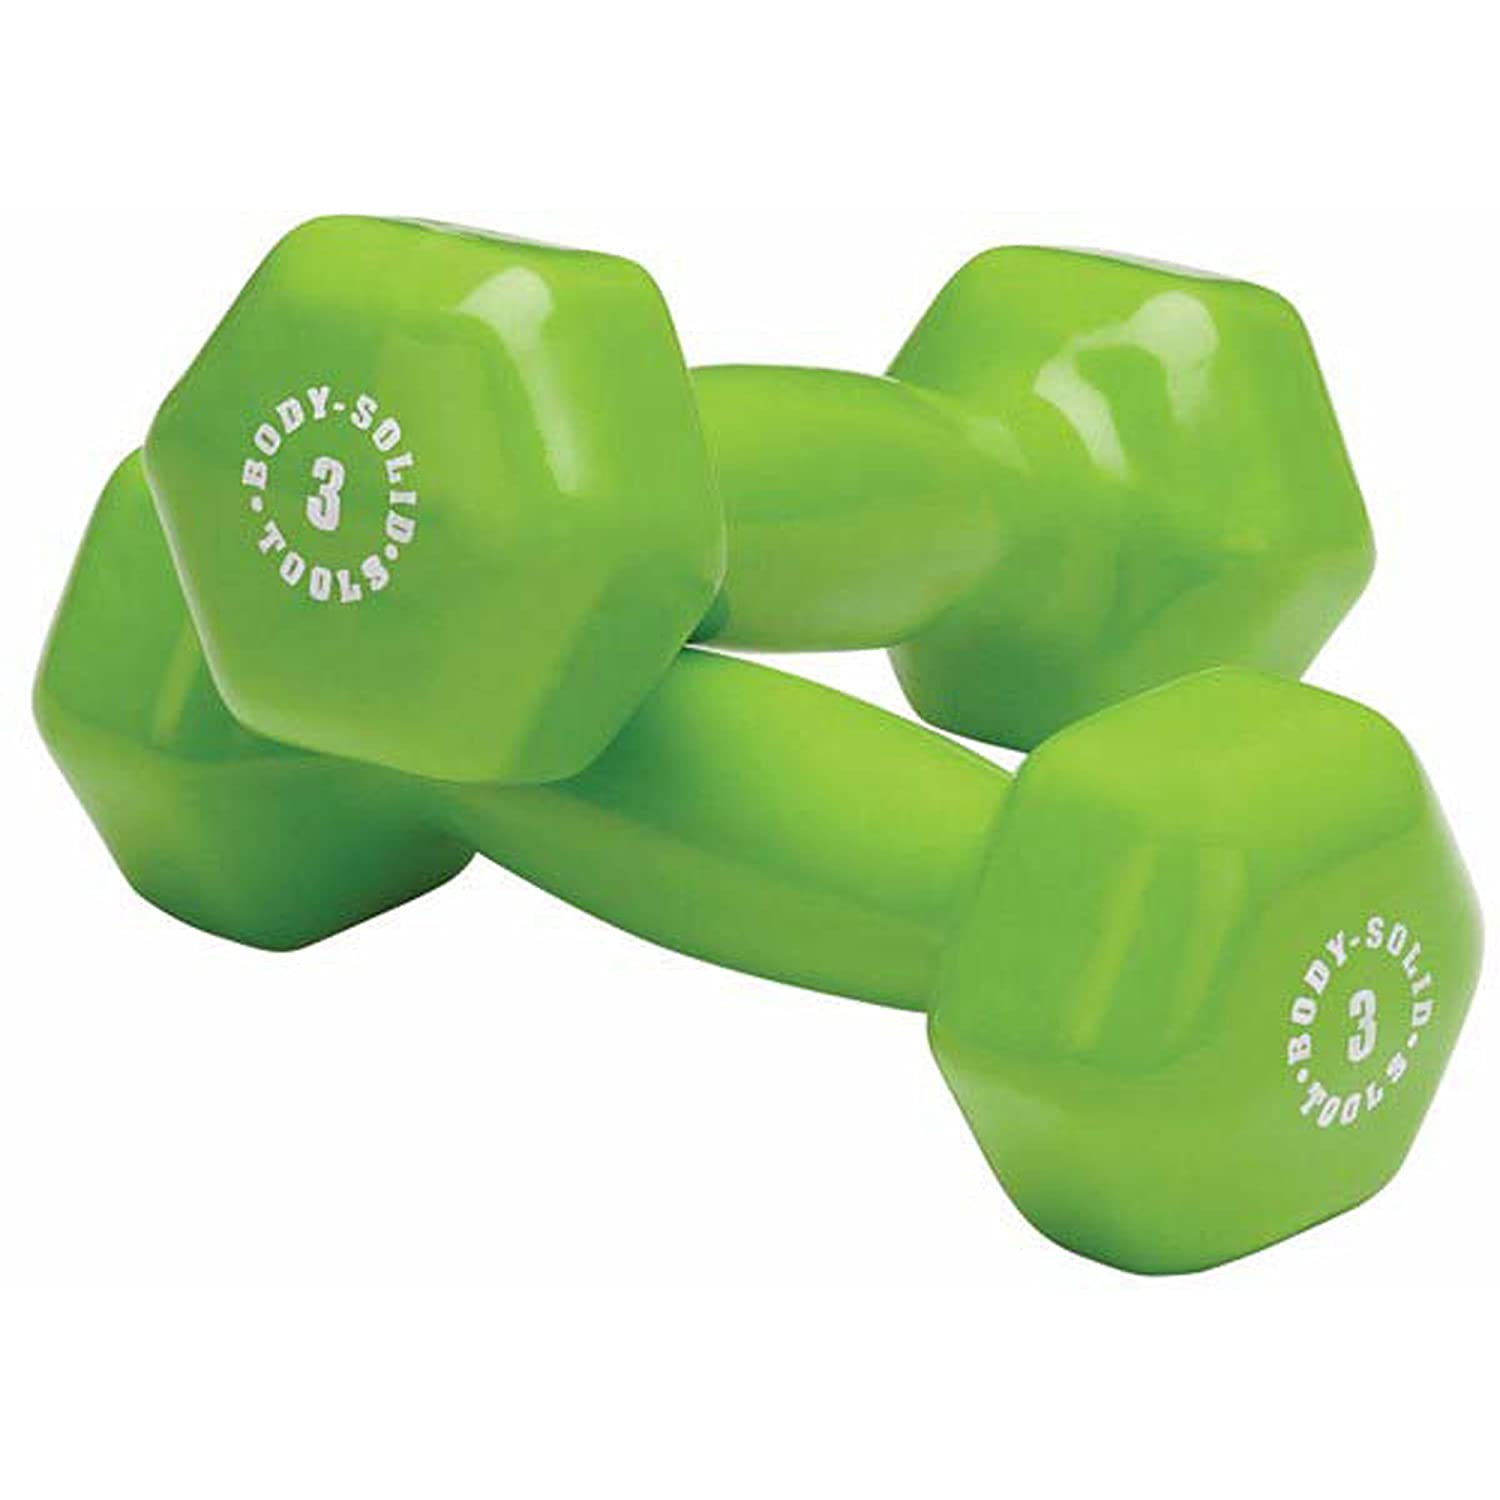 Amazon.com: Body Solid Tools BSTVD3 3-Pound Vinyl Dumbbell ...